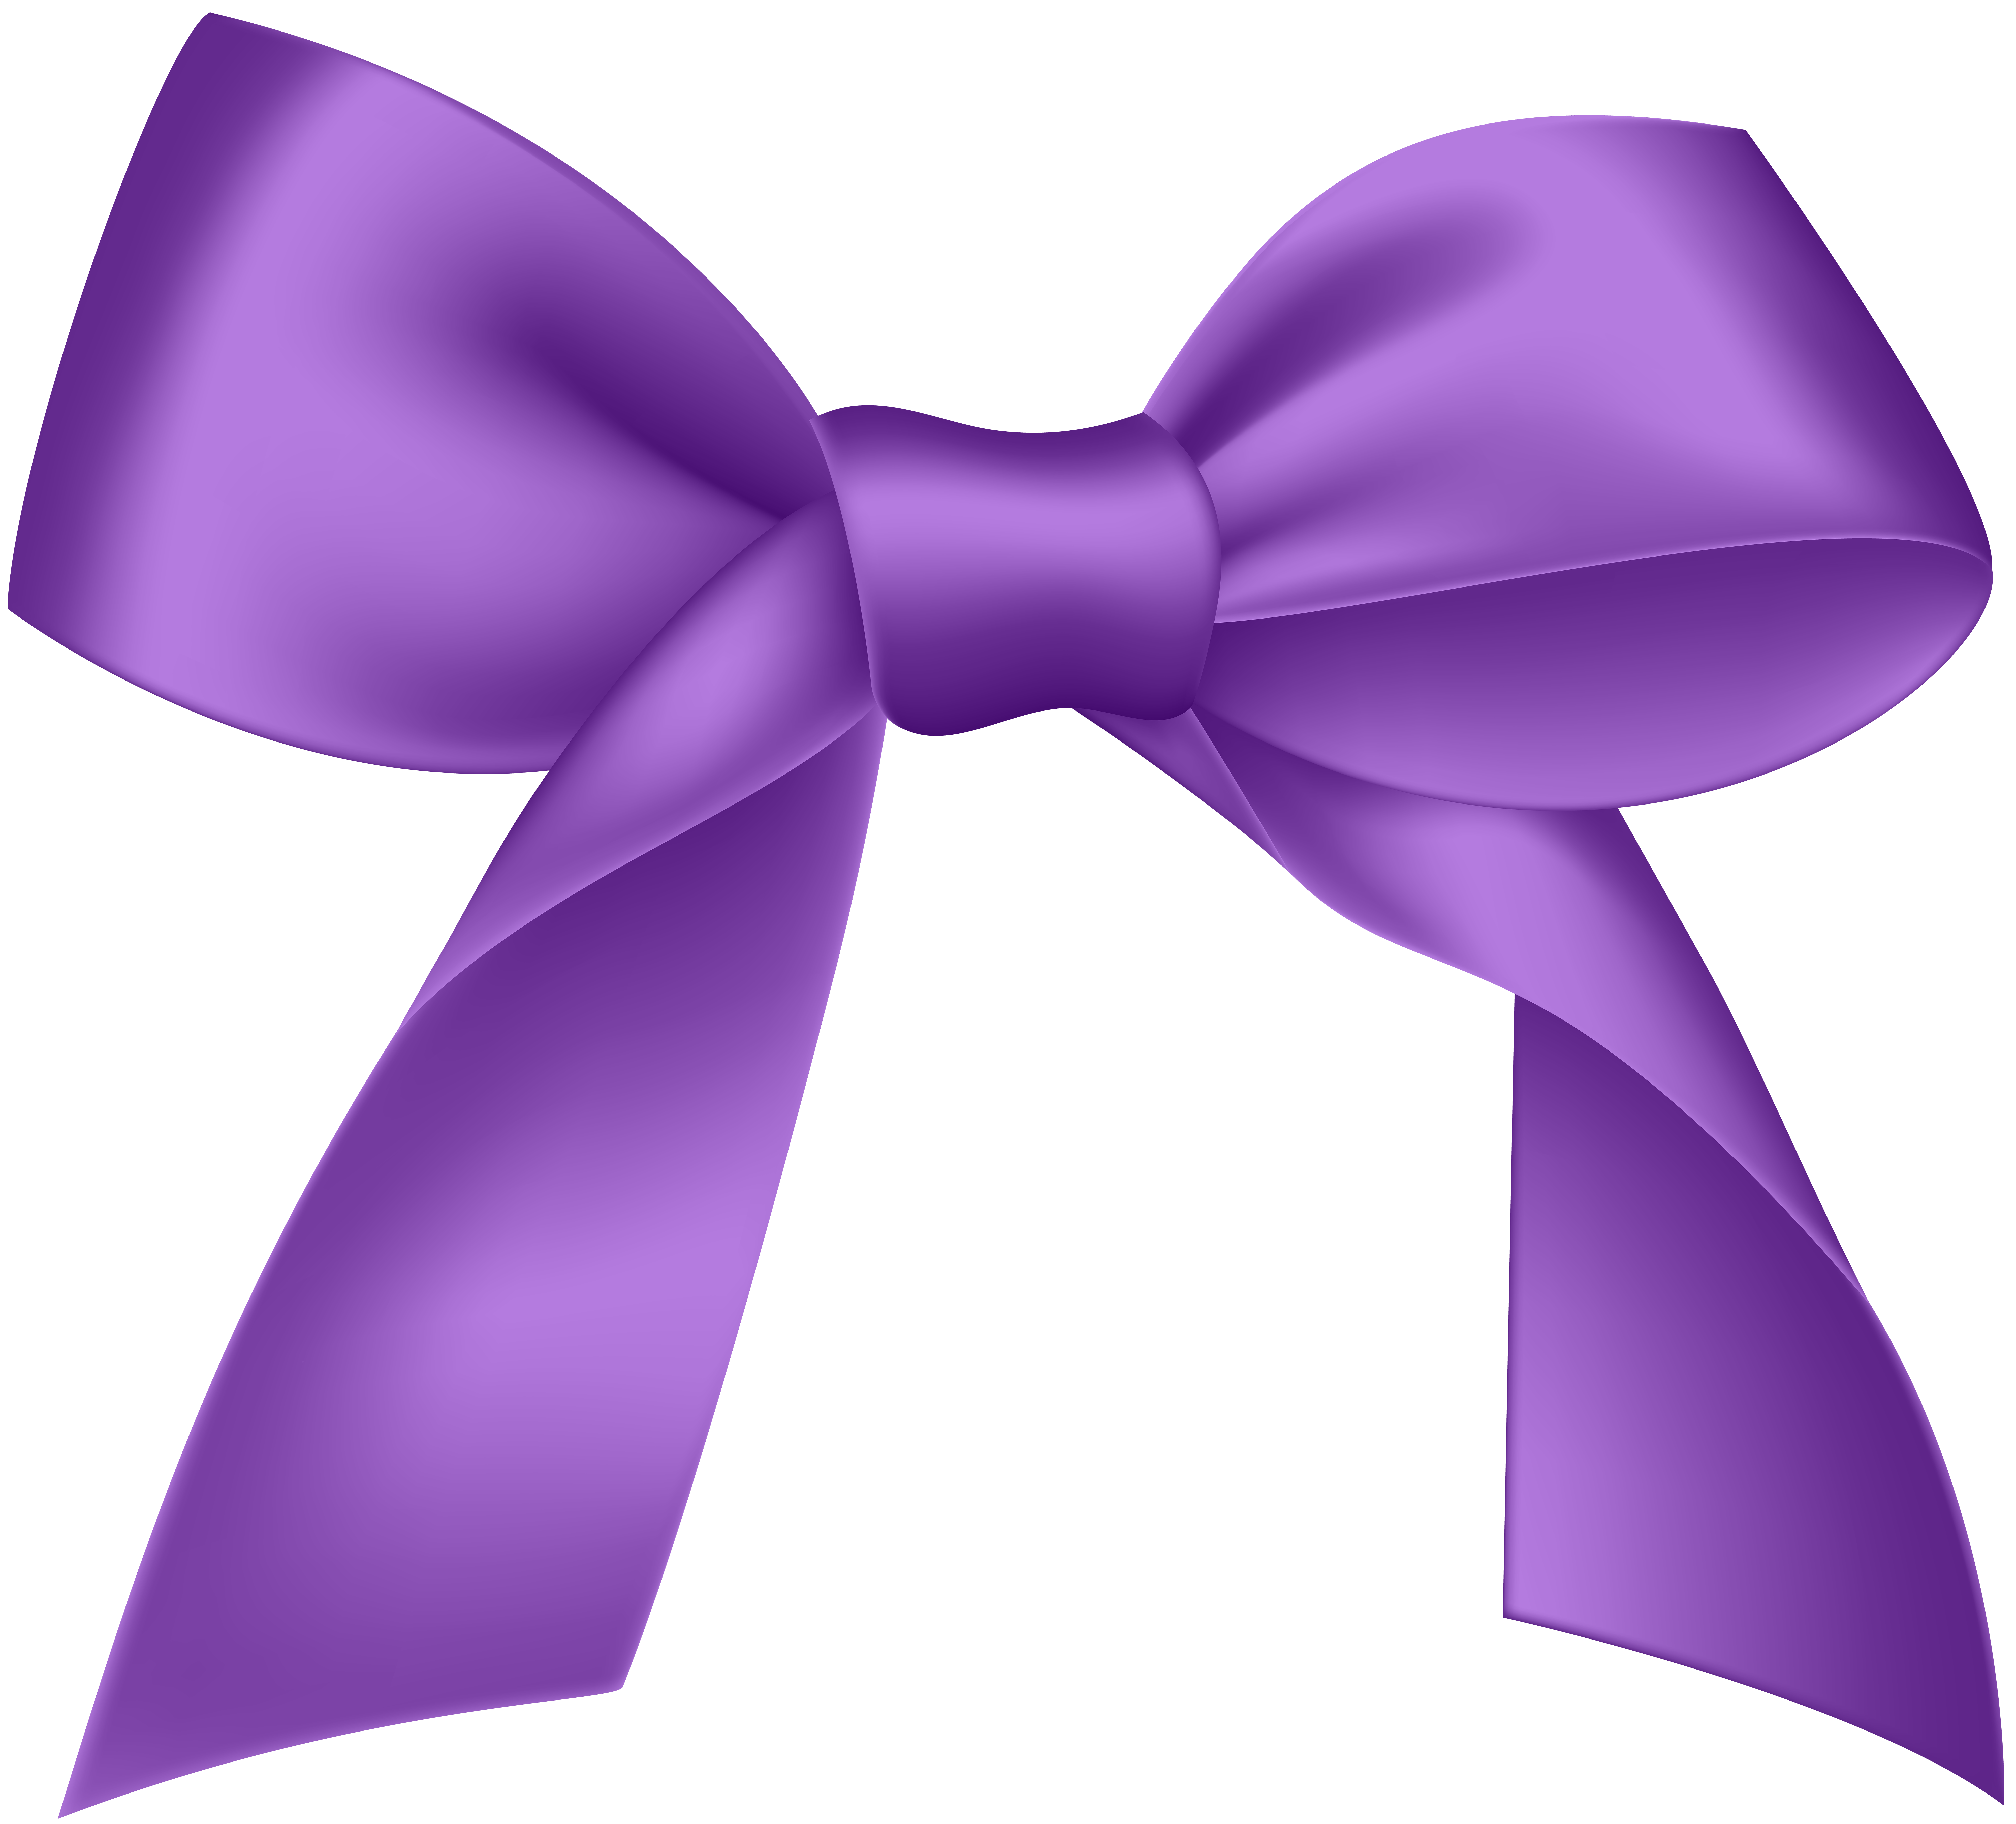 Purple Bow PNG Image.